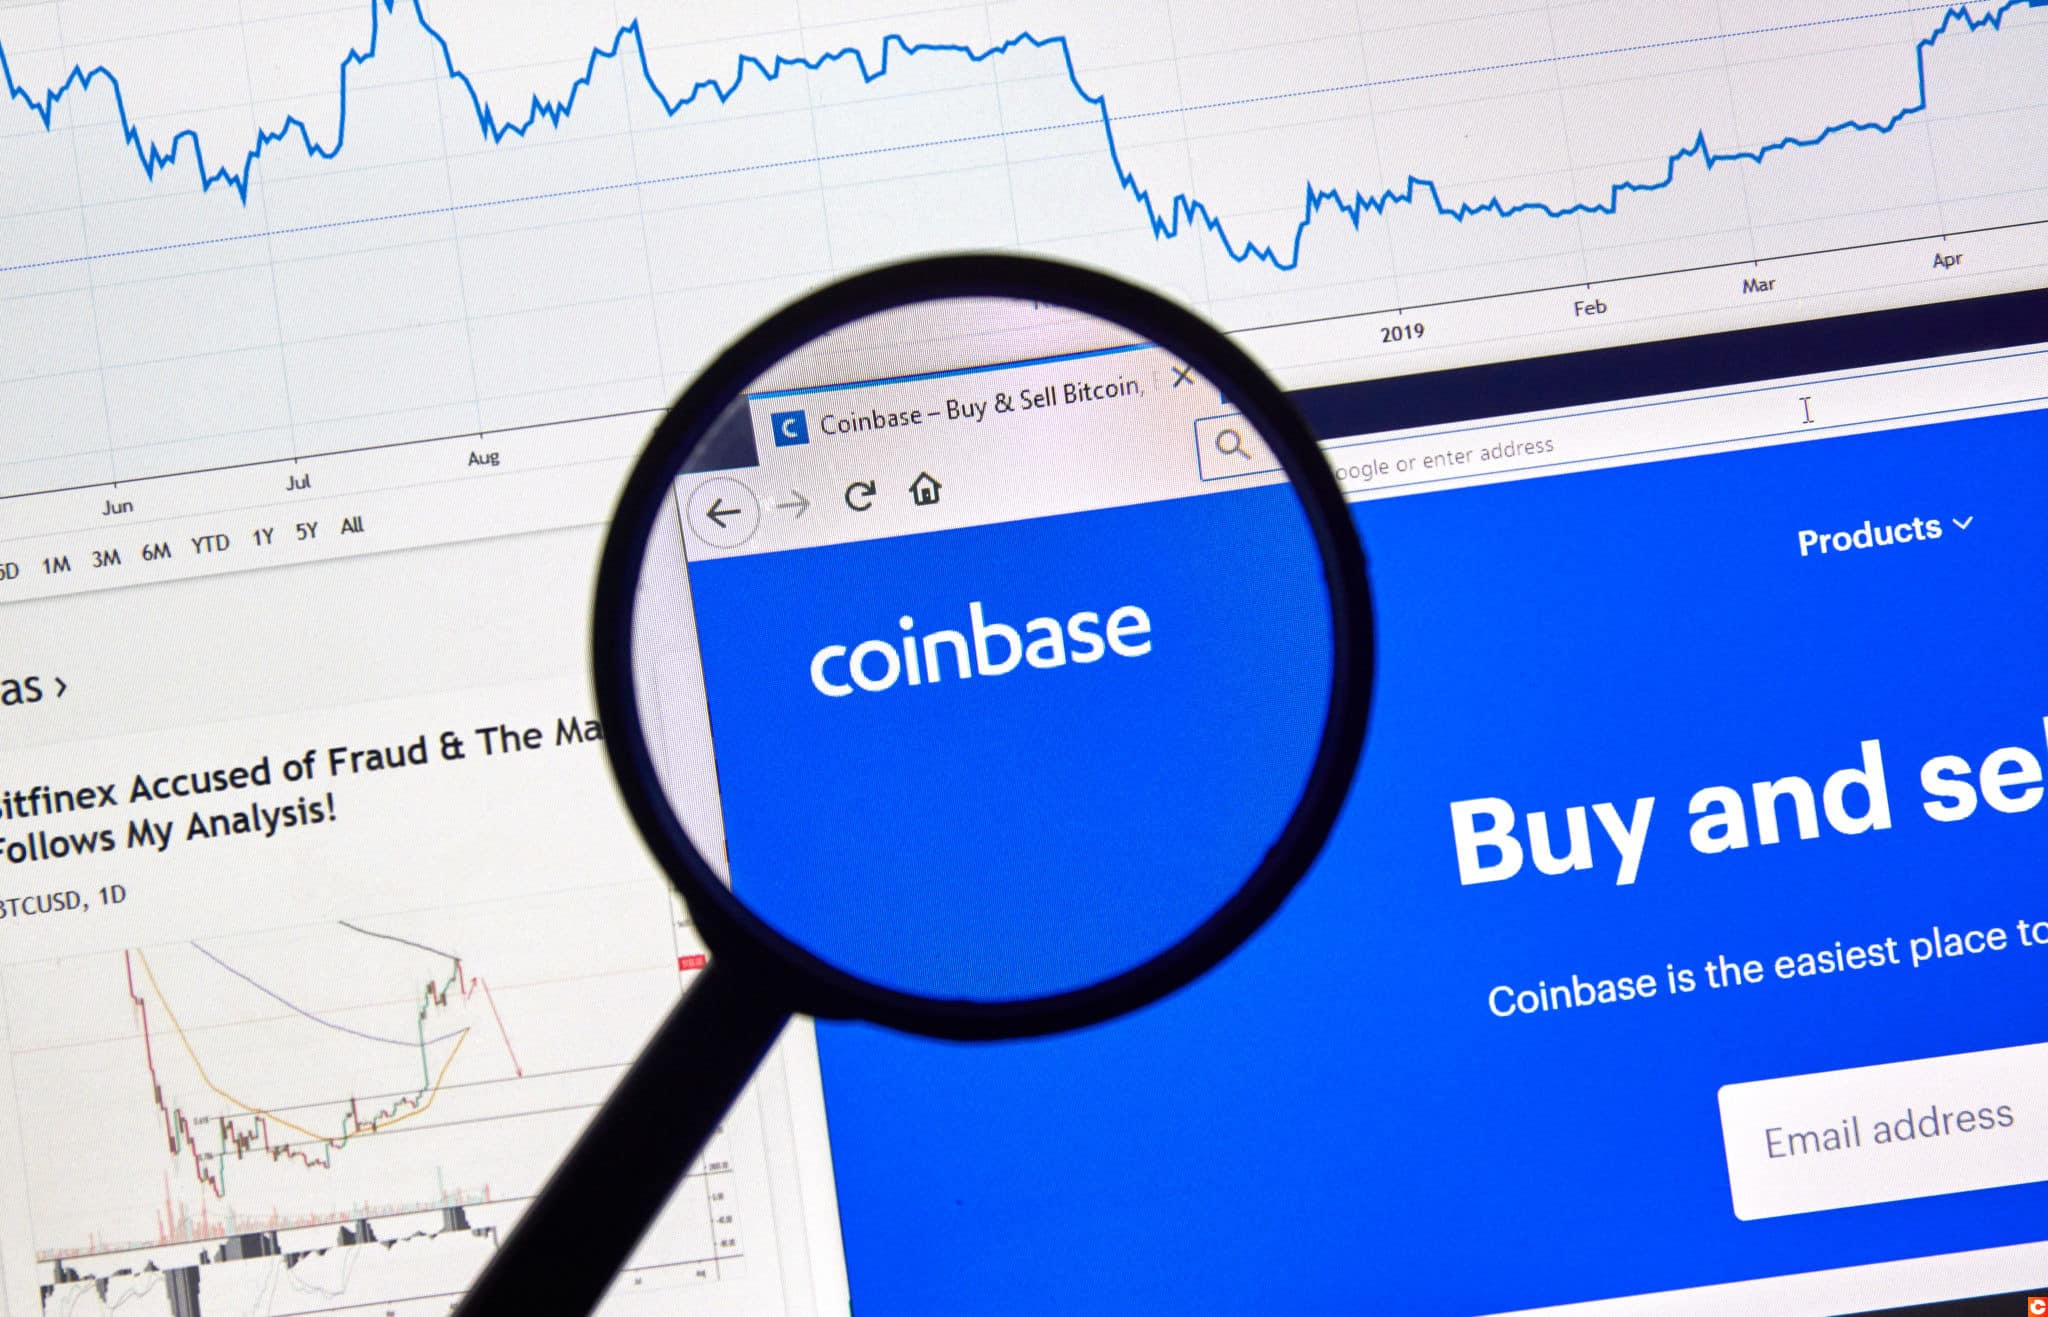 Coinbase Cryptocurrency Exchange Announces to Pay 4% Annual Interest on USD Coin Holding